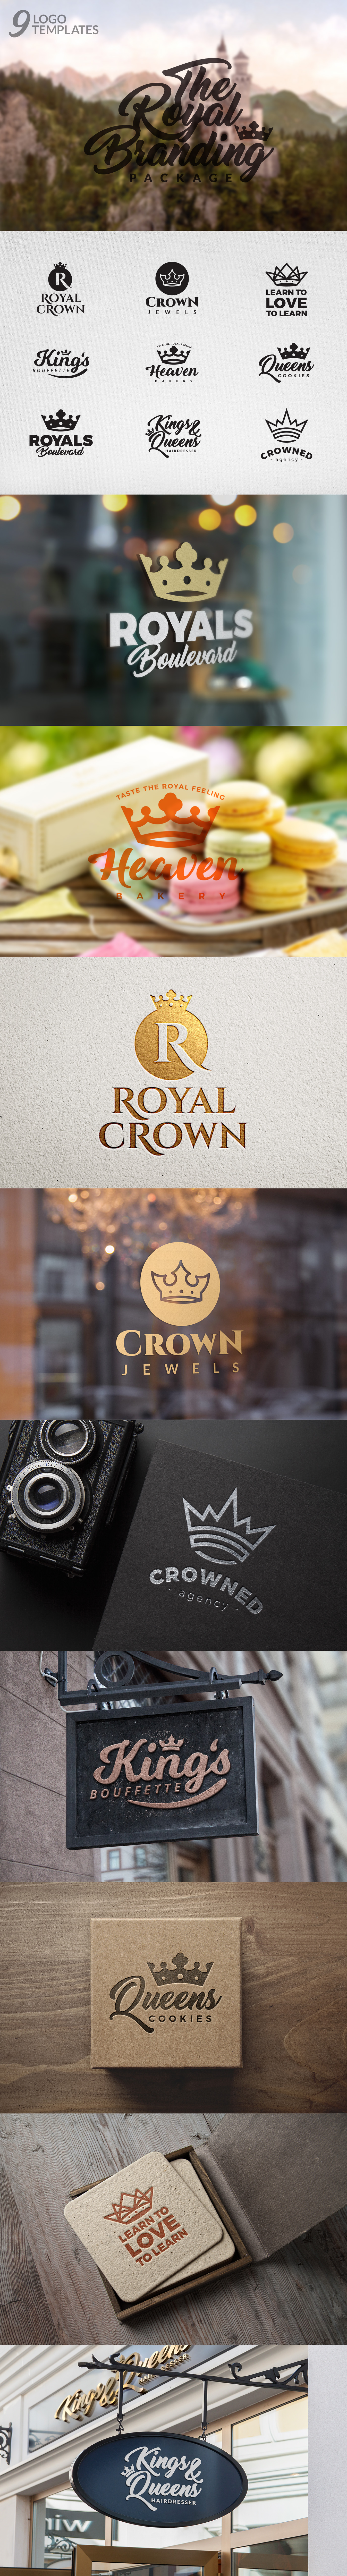 The Royal Branding Package example image 4